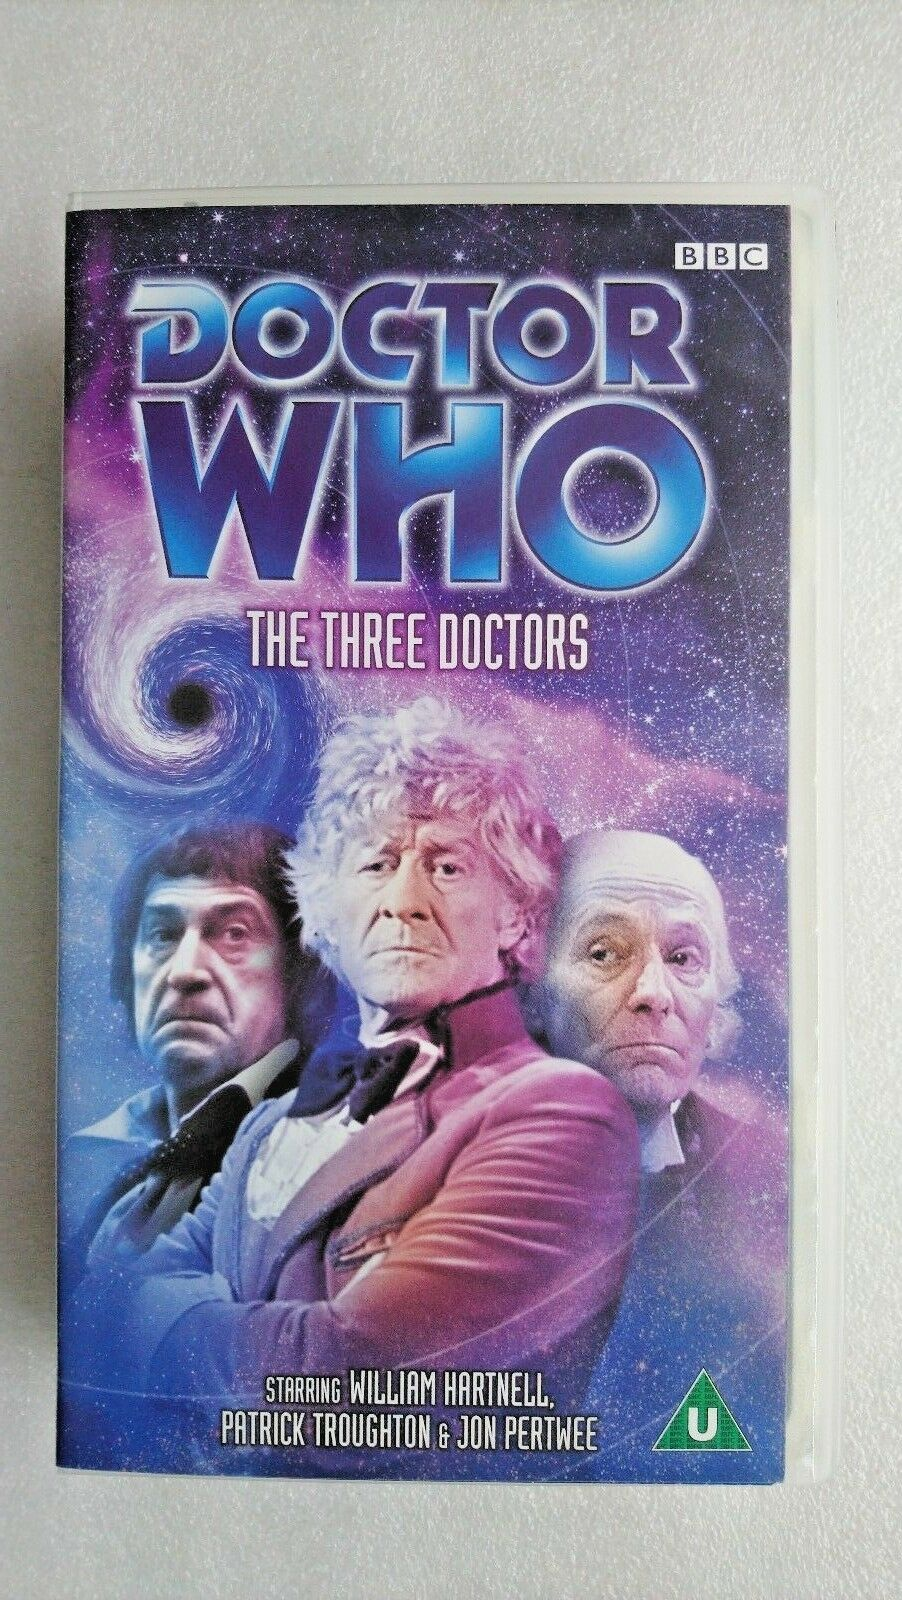 Doctor Who The Three Doctors